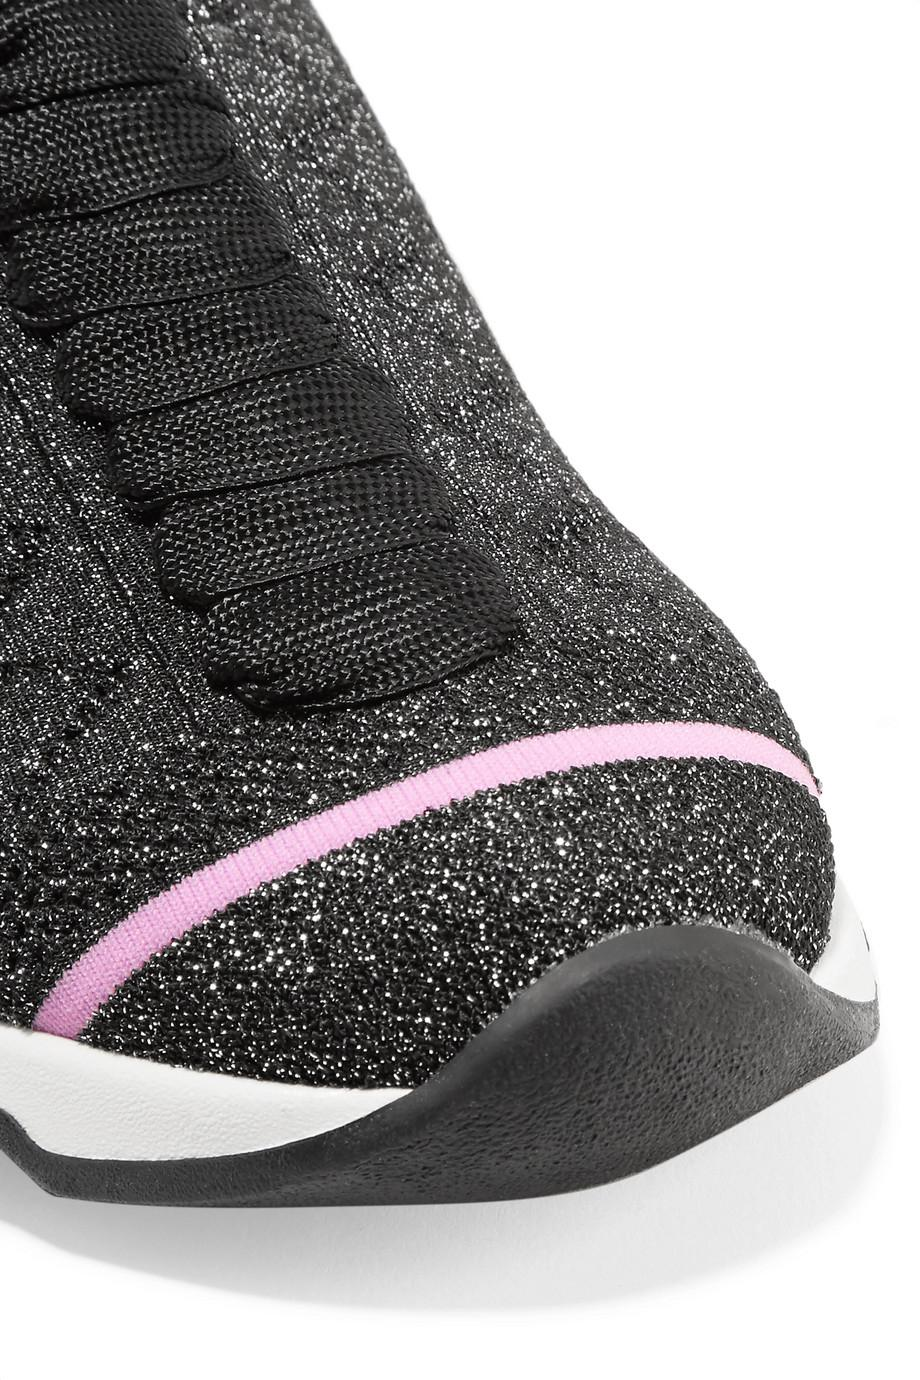 Metallic Stretch-knit Sneakers - Gunmetal Fendi 7oDcNL0i